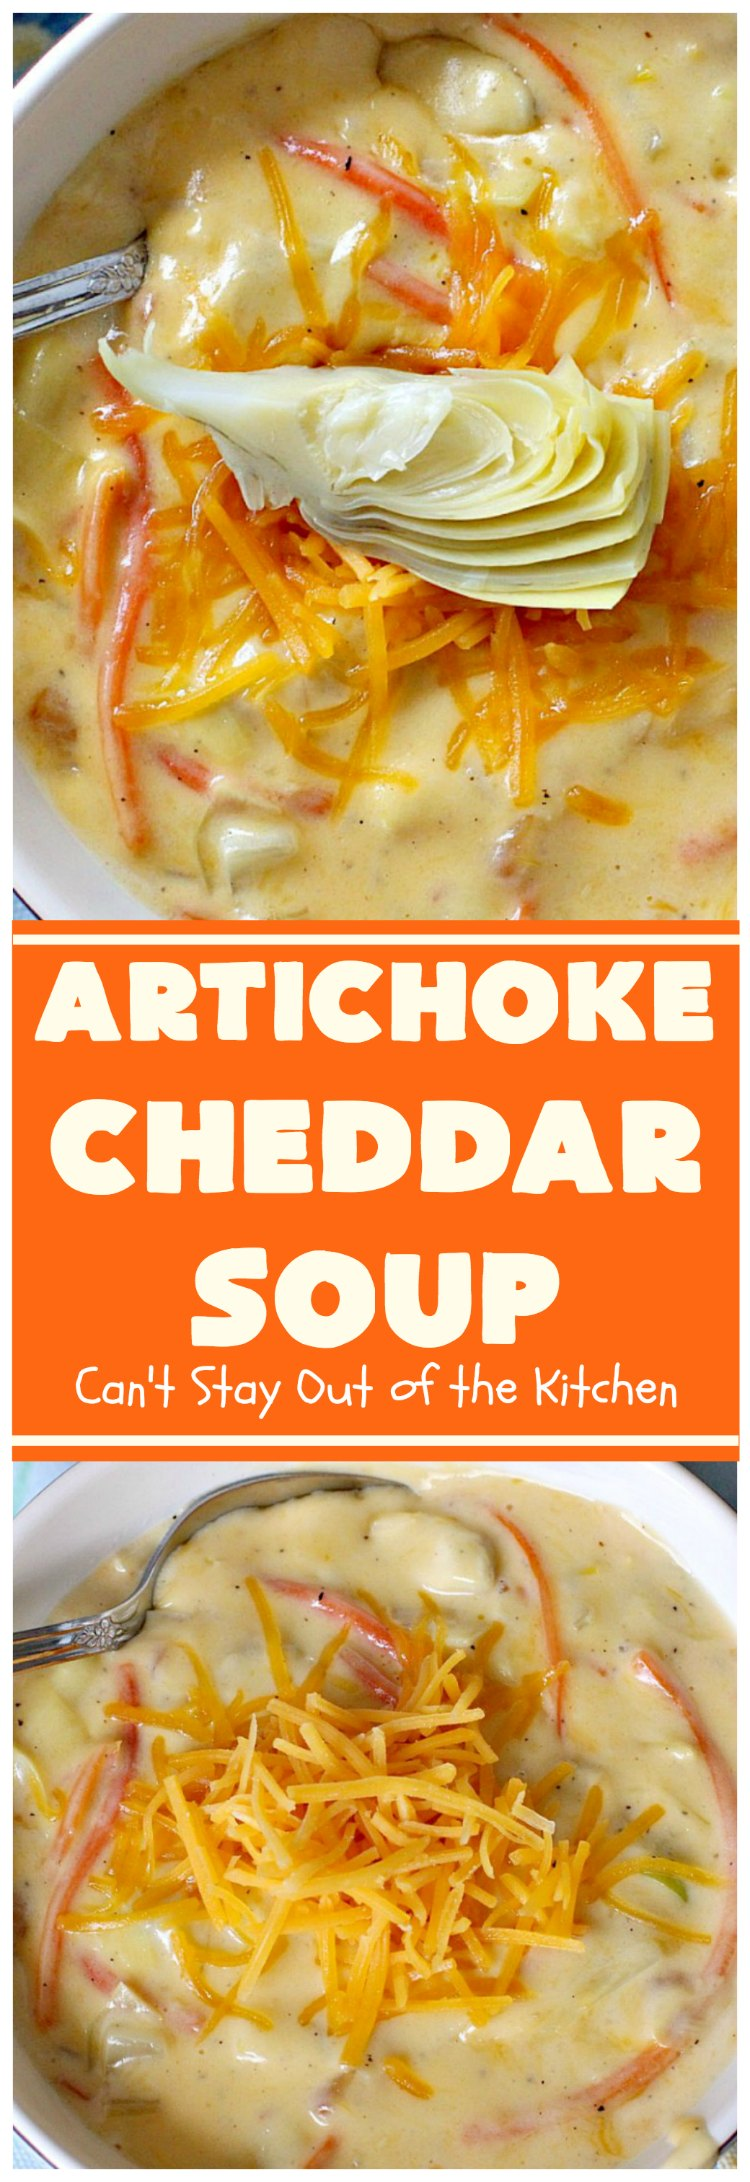 Artichoke Cheddar Soup | Can't Stay Out of the Kitchen | this #soup is comfort food at it's best & only takes 25 minutes to make! It's perfect for week nights now that weather is turning cooler. #artichokes #cheddarcheese #glutenfree